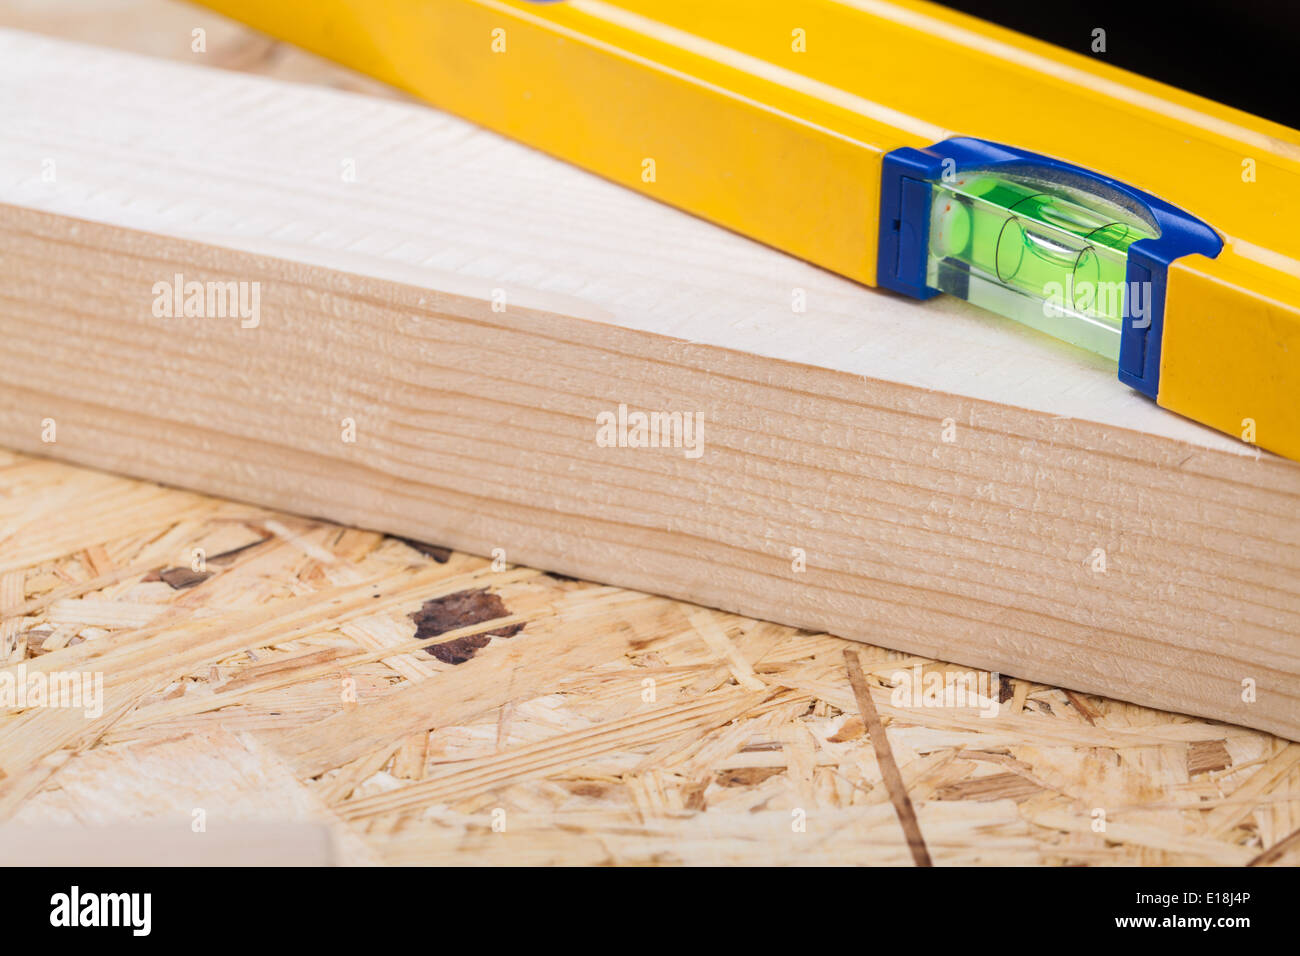 Right Angle Ruler Stock Photos Amp Right Angle Ruler Stock